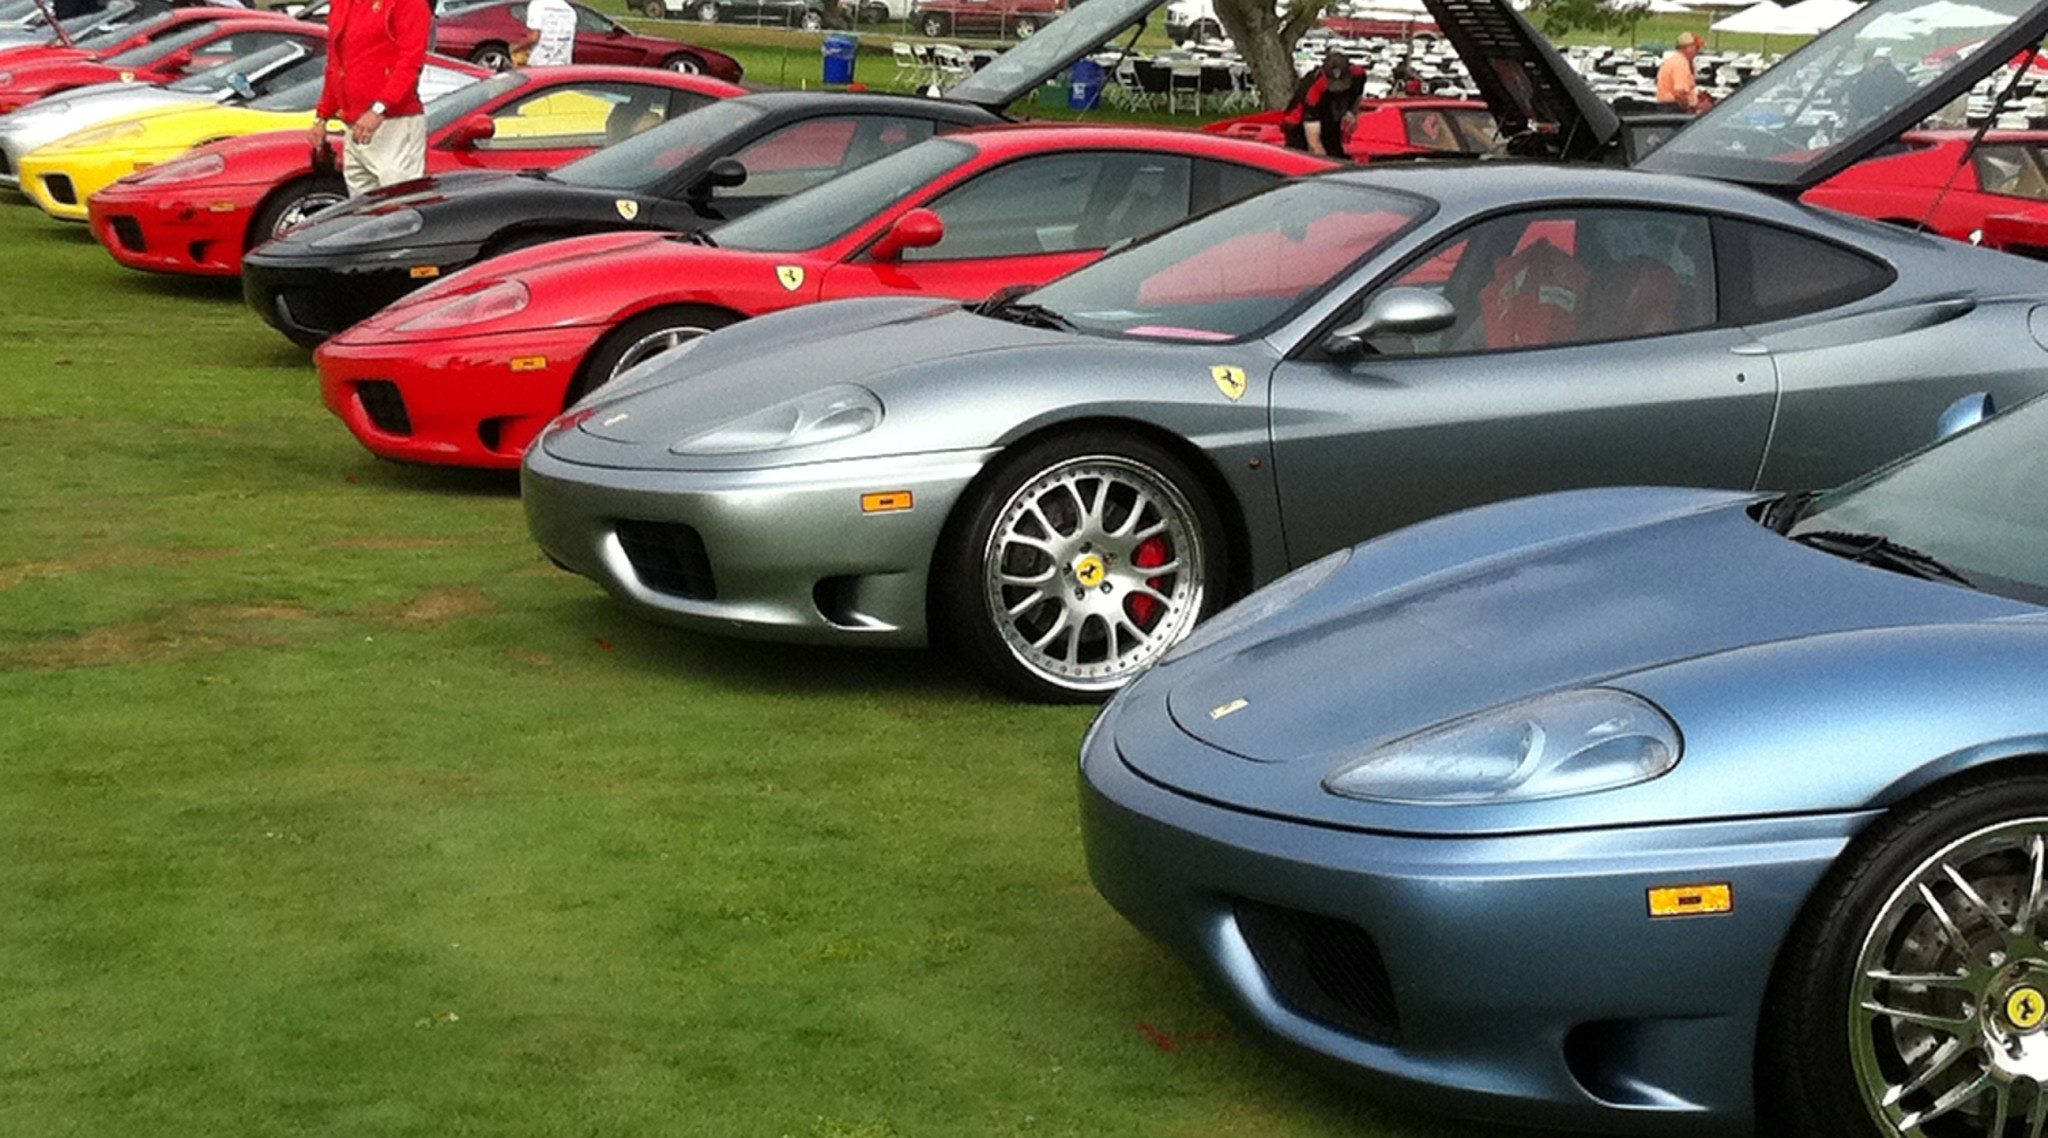 Exotic Sports Car Insurance Heacock Classic Insurance - Exotic sports cars